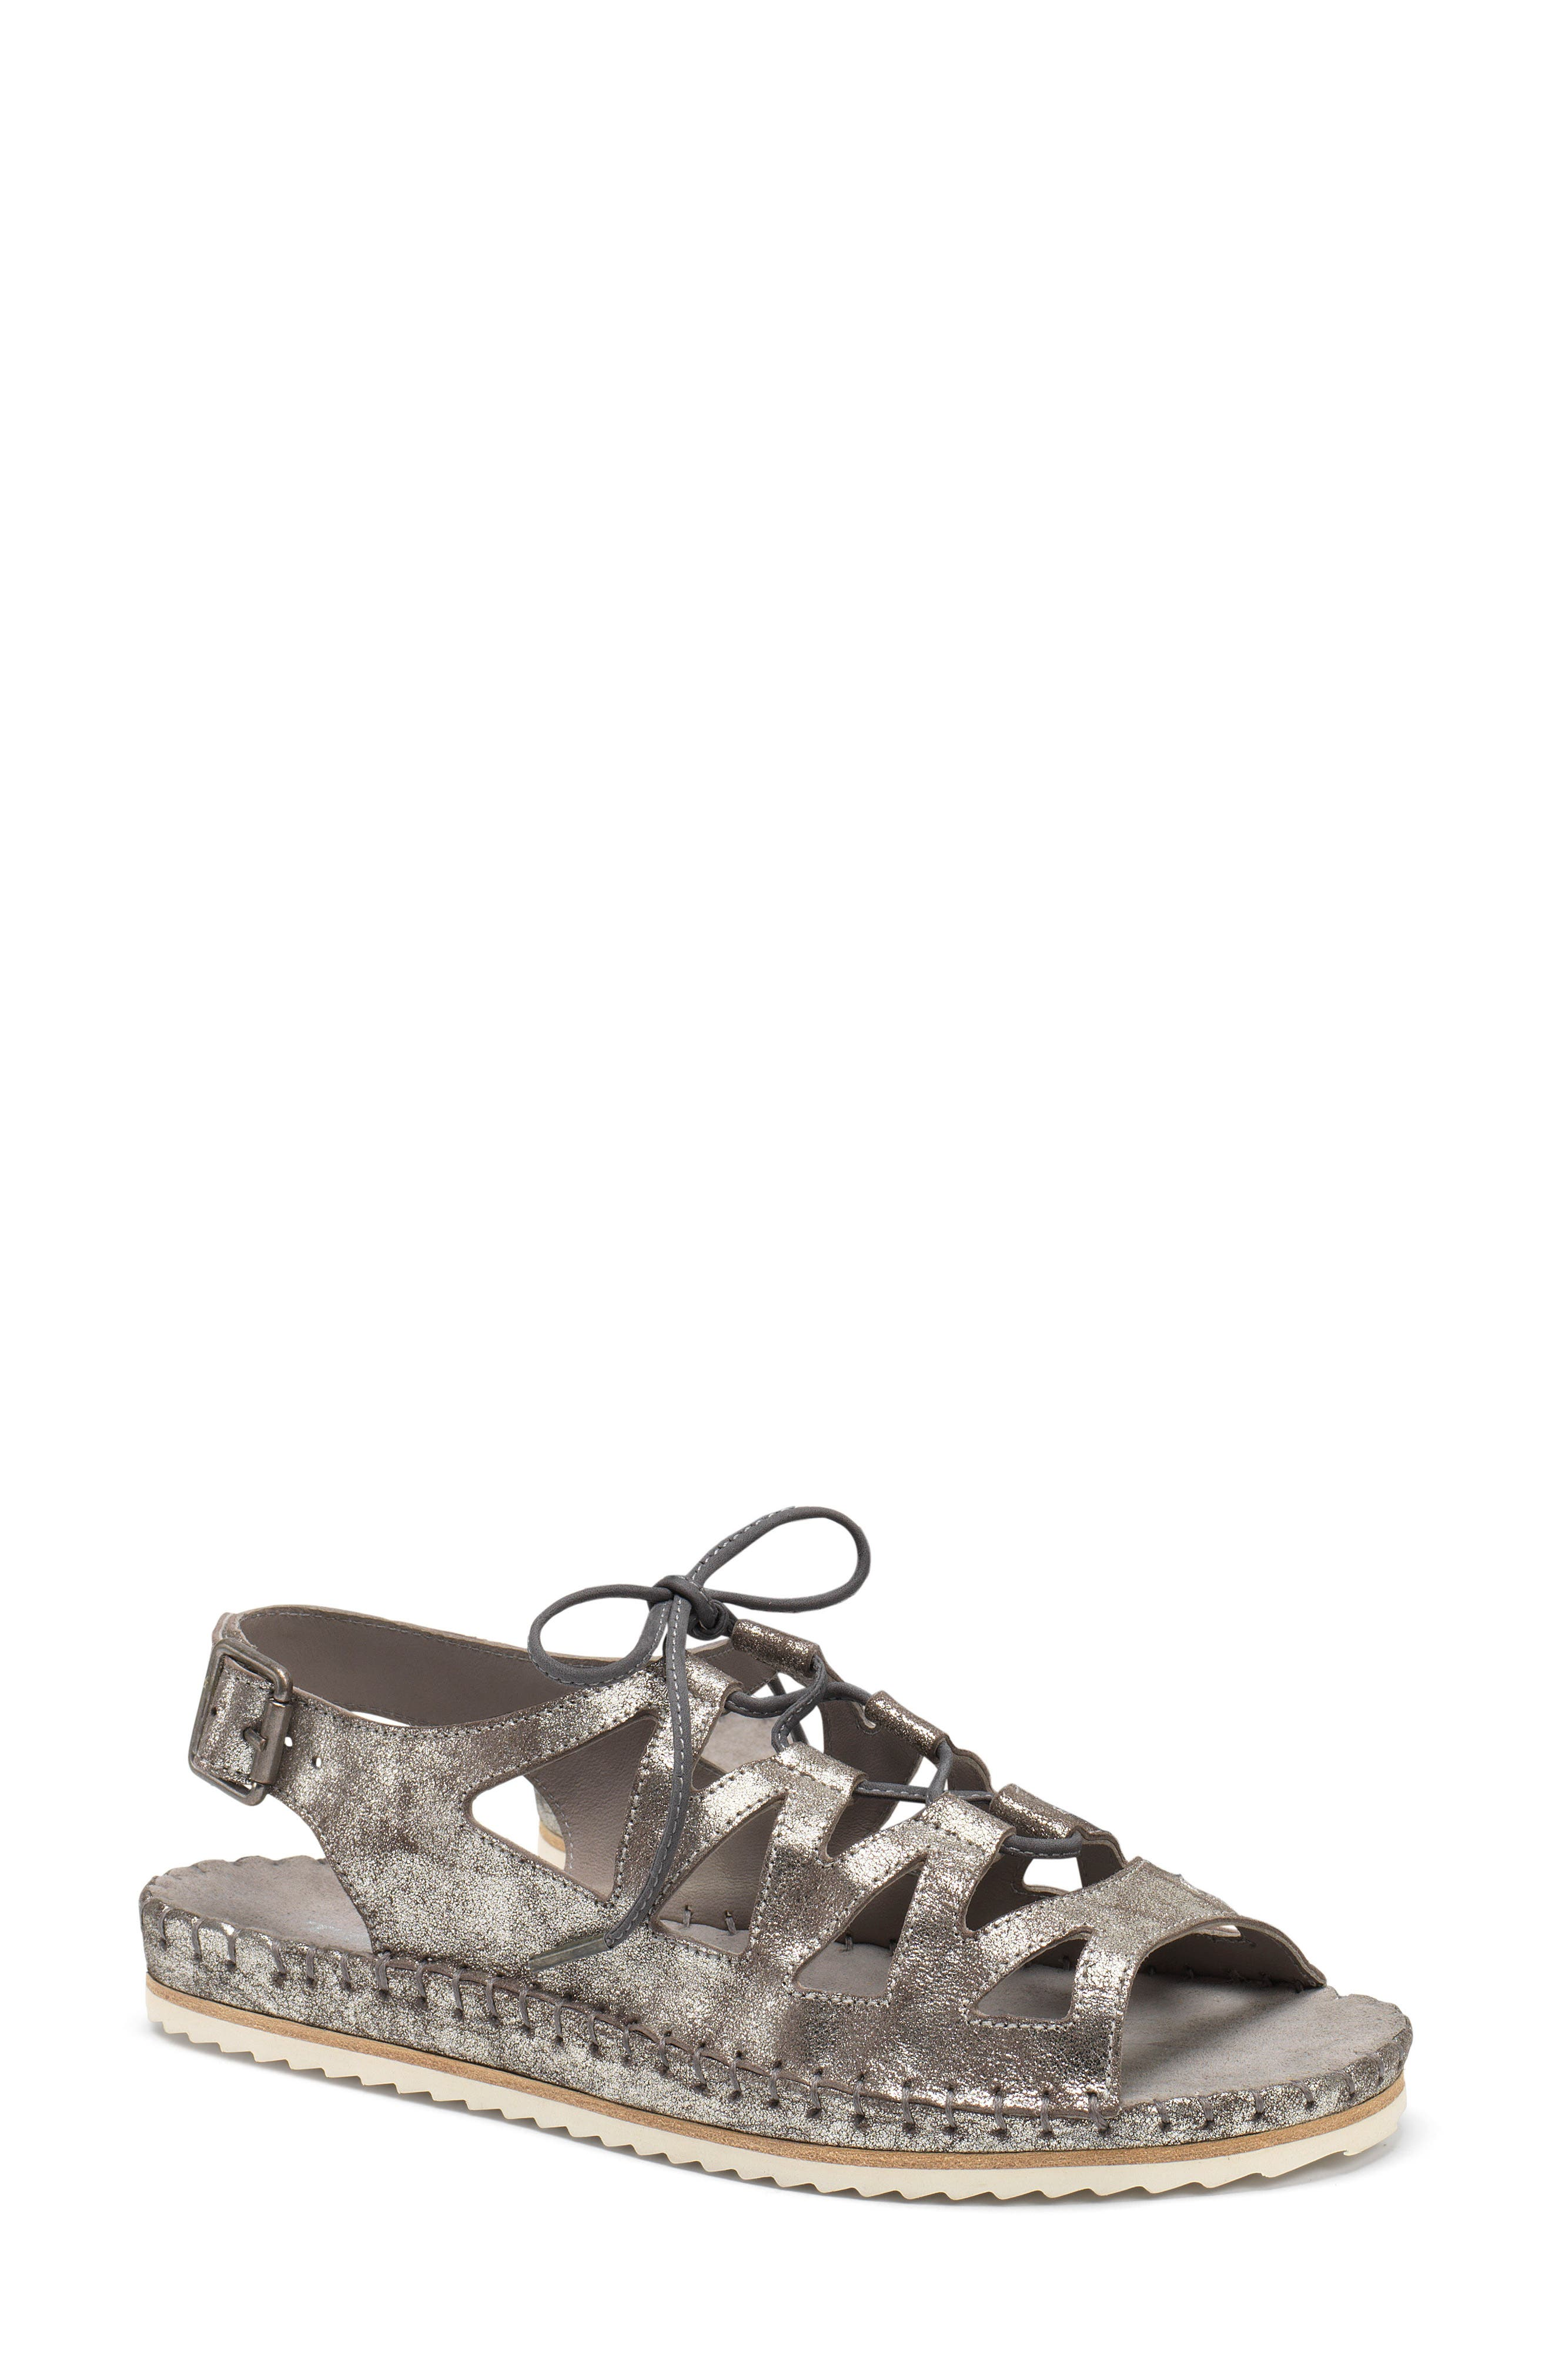 Chandler Ghillie Sandal,                             Main thumbnail 1, color,                             PEWTER LEATHER